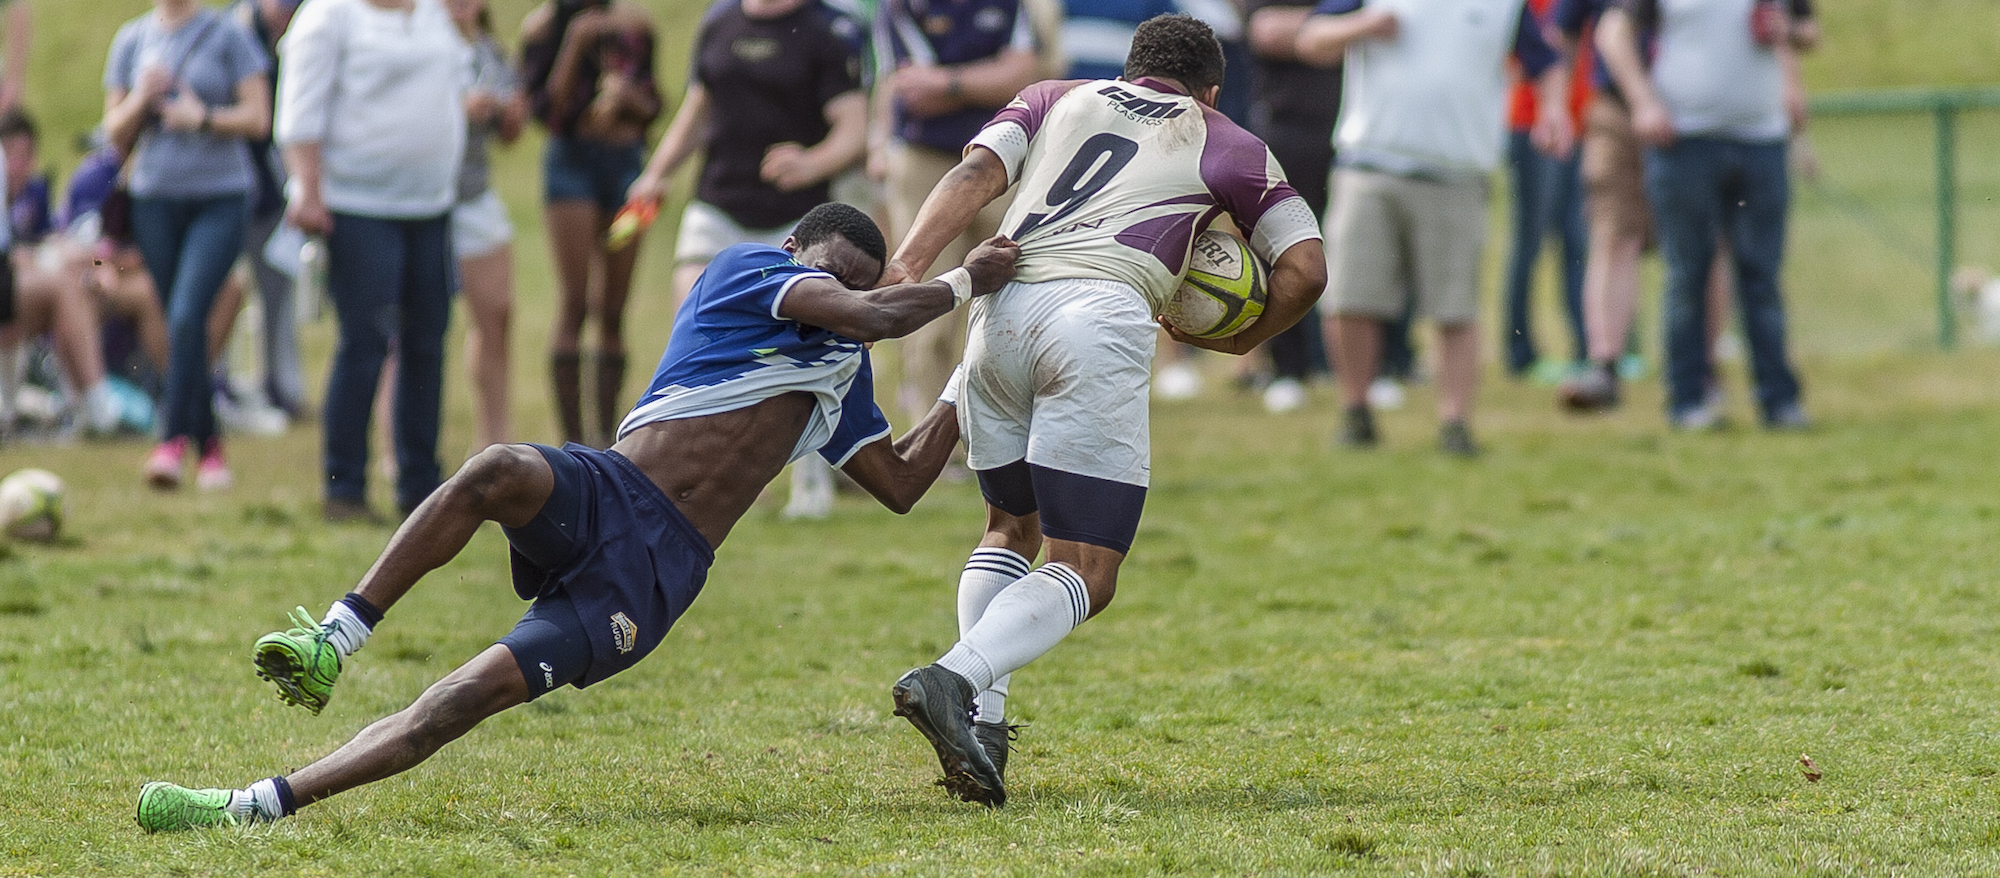 Dmontae Noble in action for Kutztown University Rugby March 25, 2017. Colleen McCloskey photo.